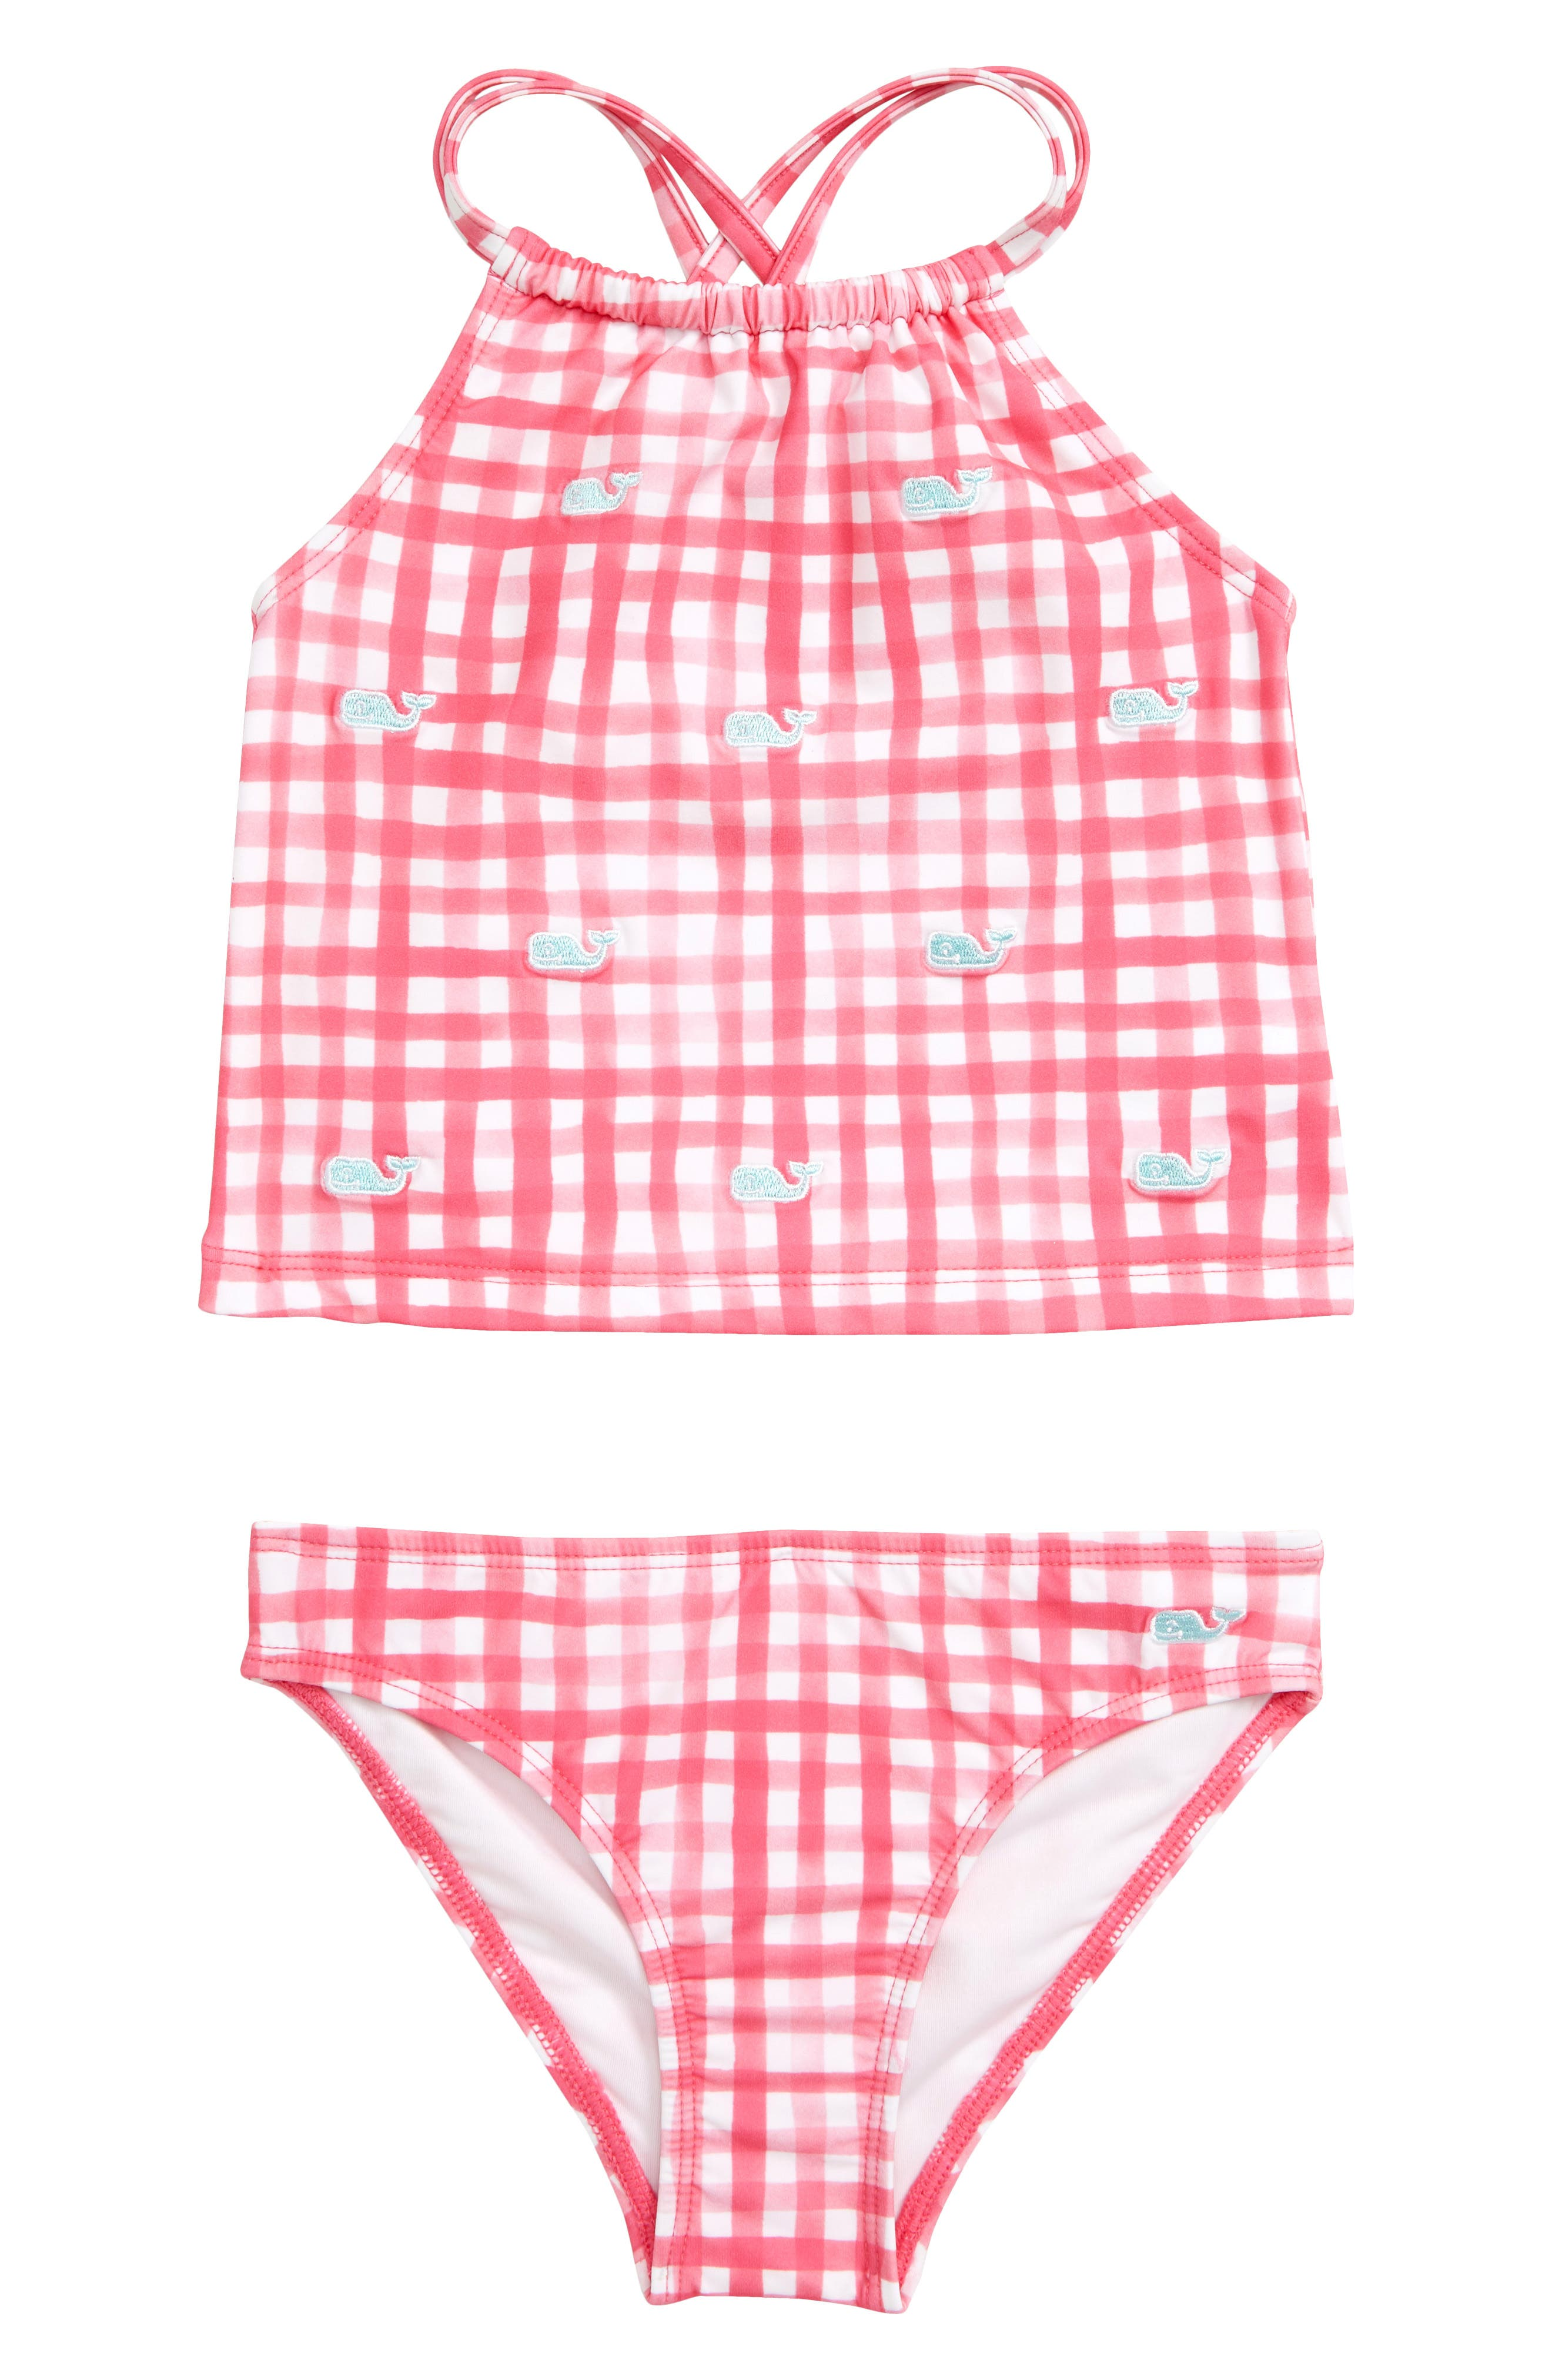 VINEYARD VINES Painted Gingham Two-Piece Tankini Swimsuit, Main, color, SWEET TAFFY